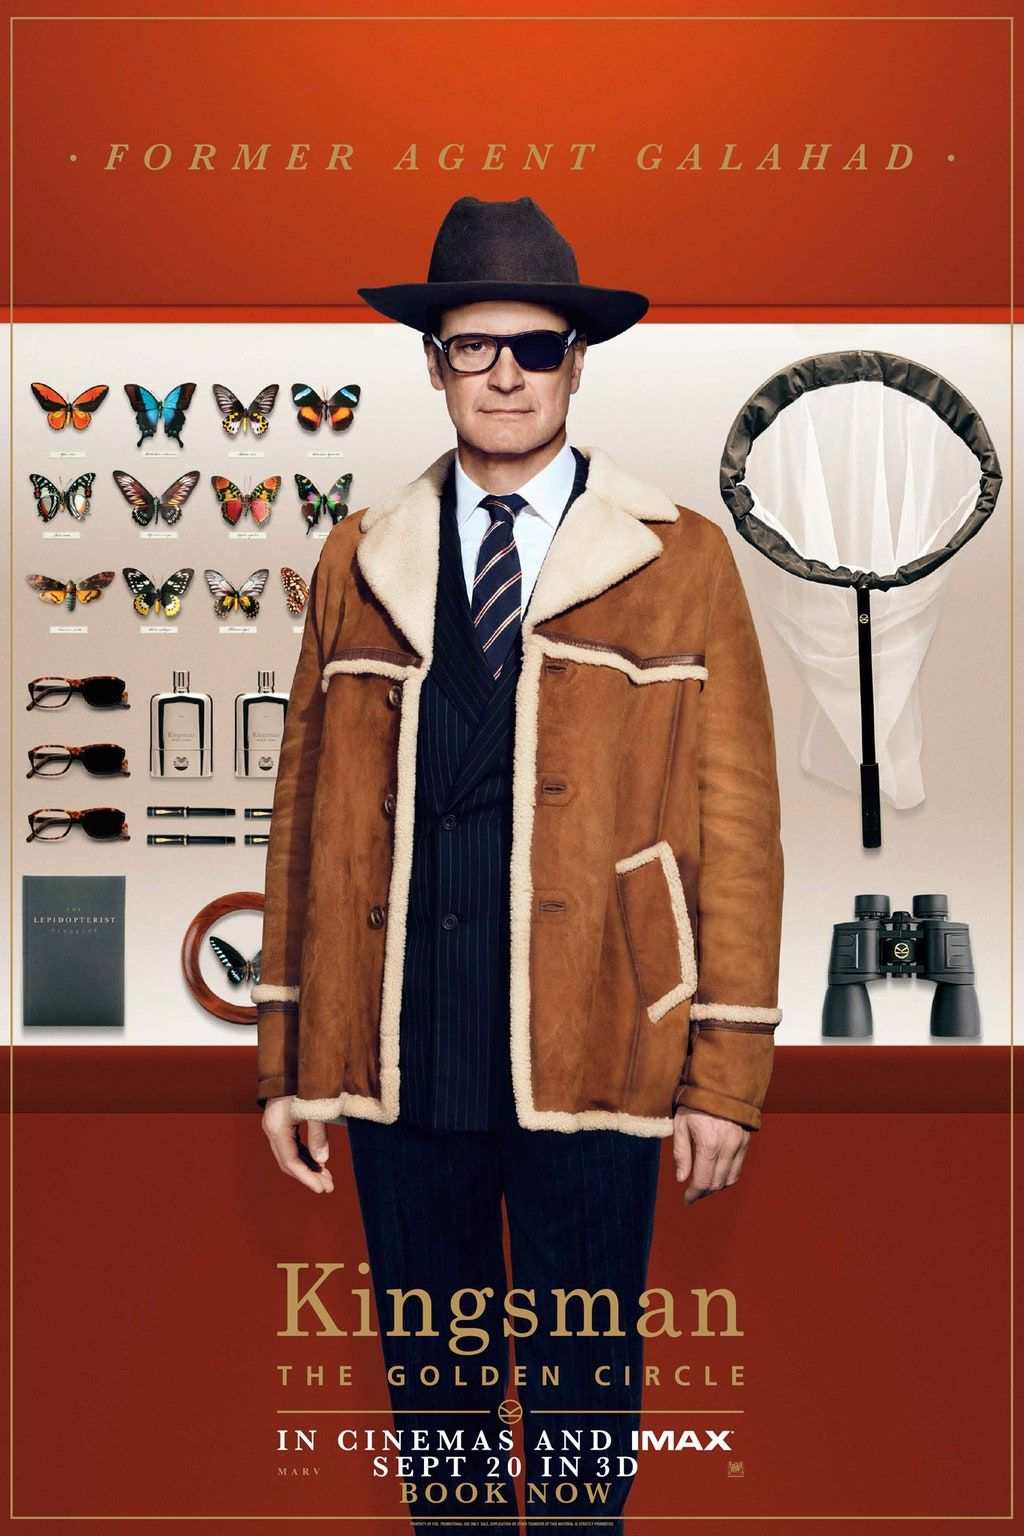 Exclusive new posters from Kingsman The Golden Circle in